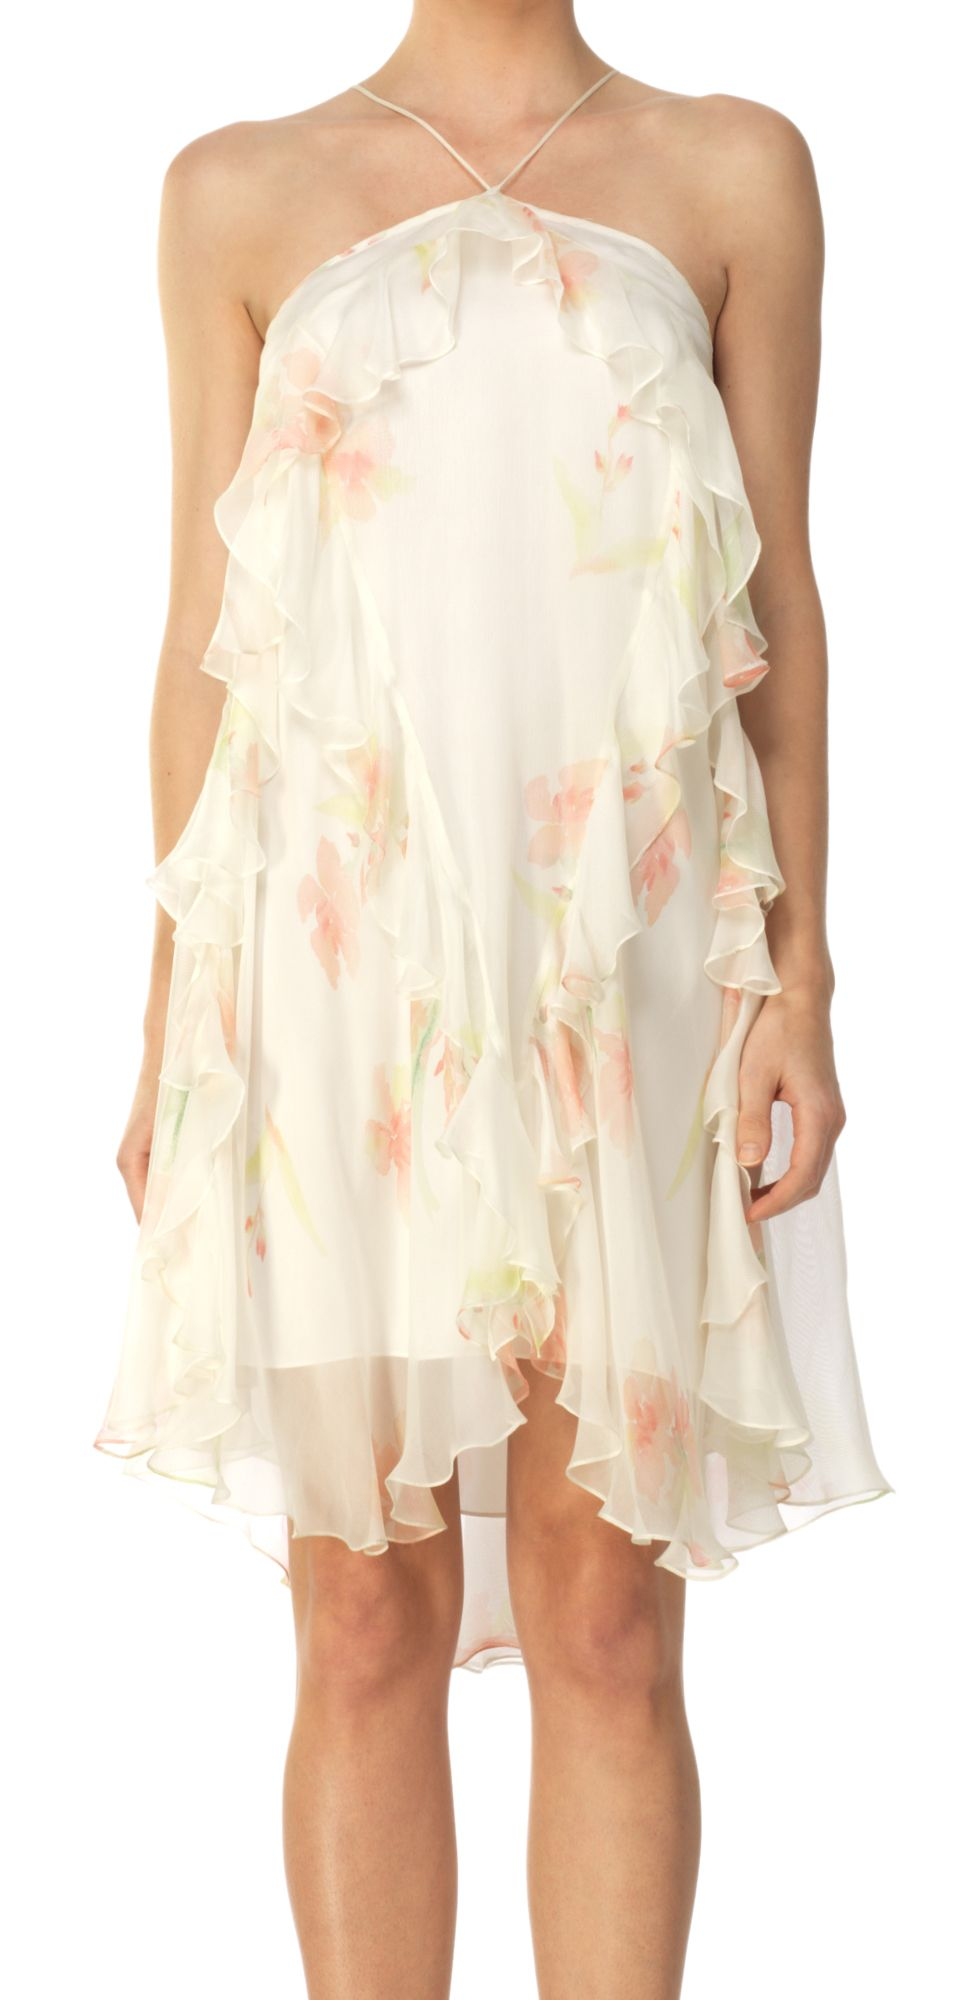 WATERCOLOR SILK CHIFFON FLOUNCE DRESS | Girly, frilly, flouncy - I love it!